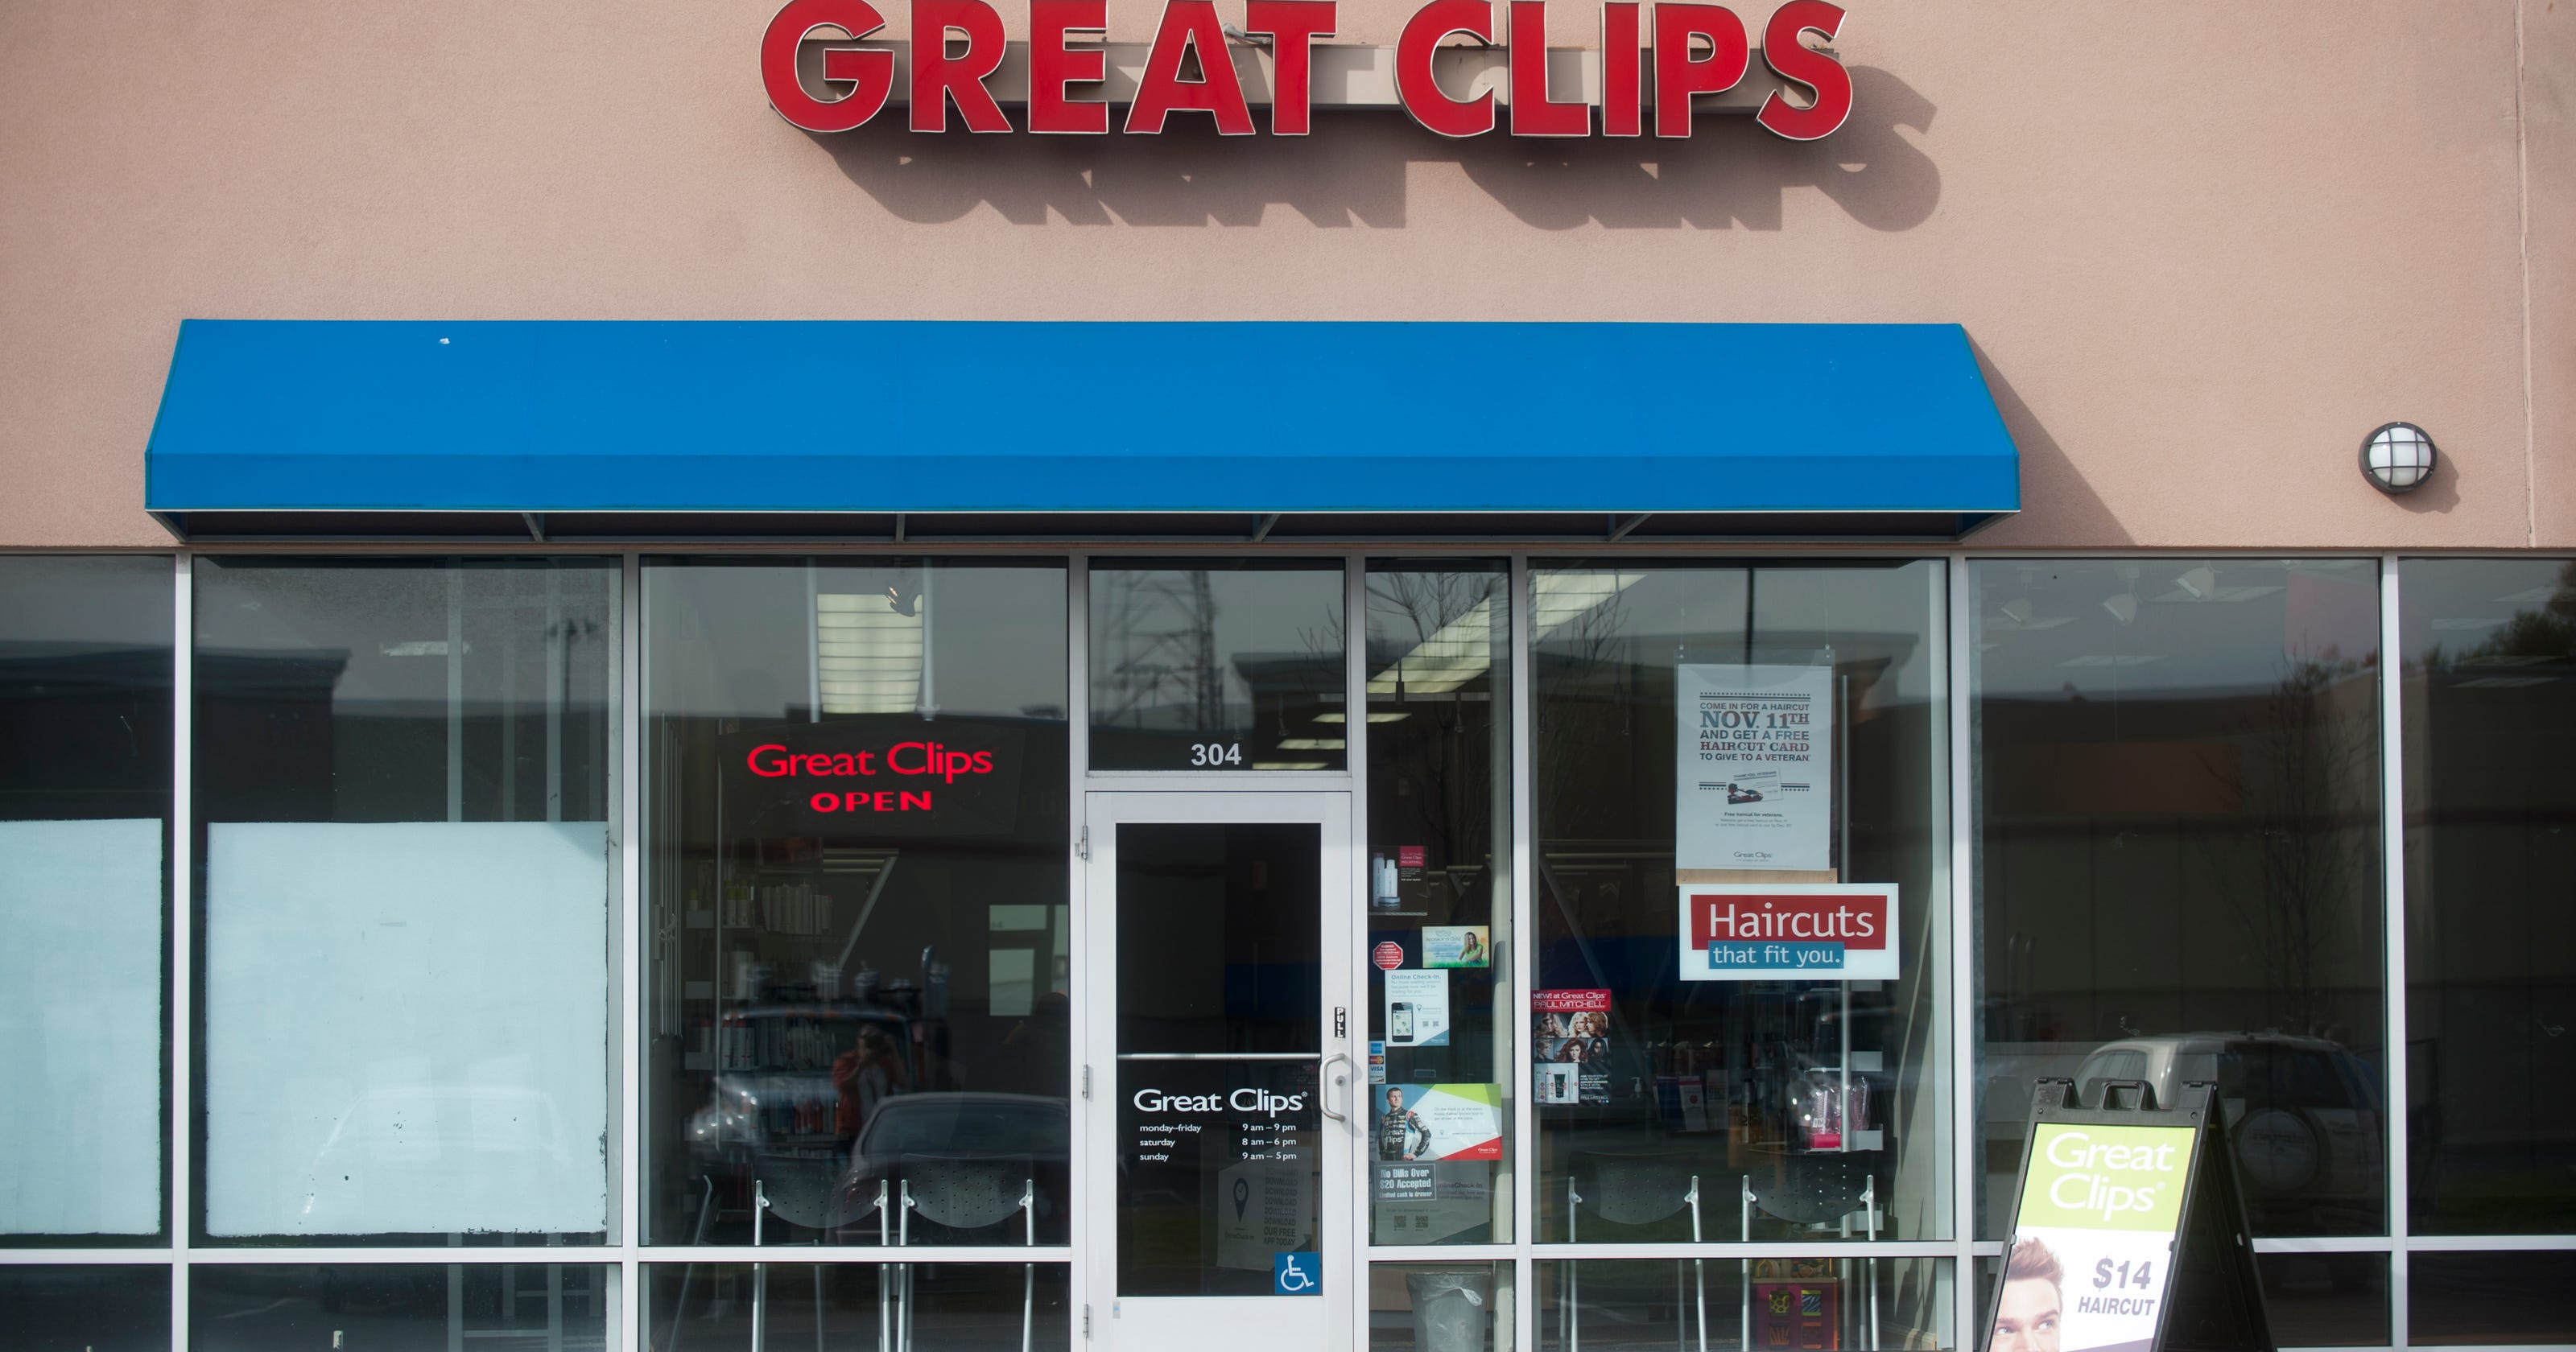 Storefront Veterans Day Deals For Those Who Served